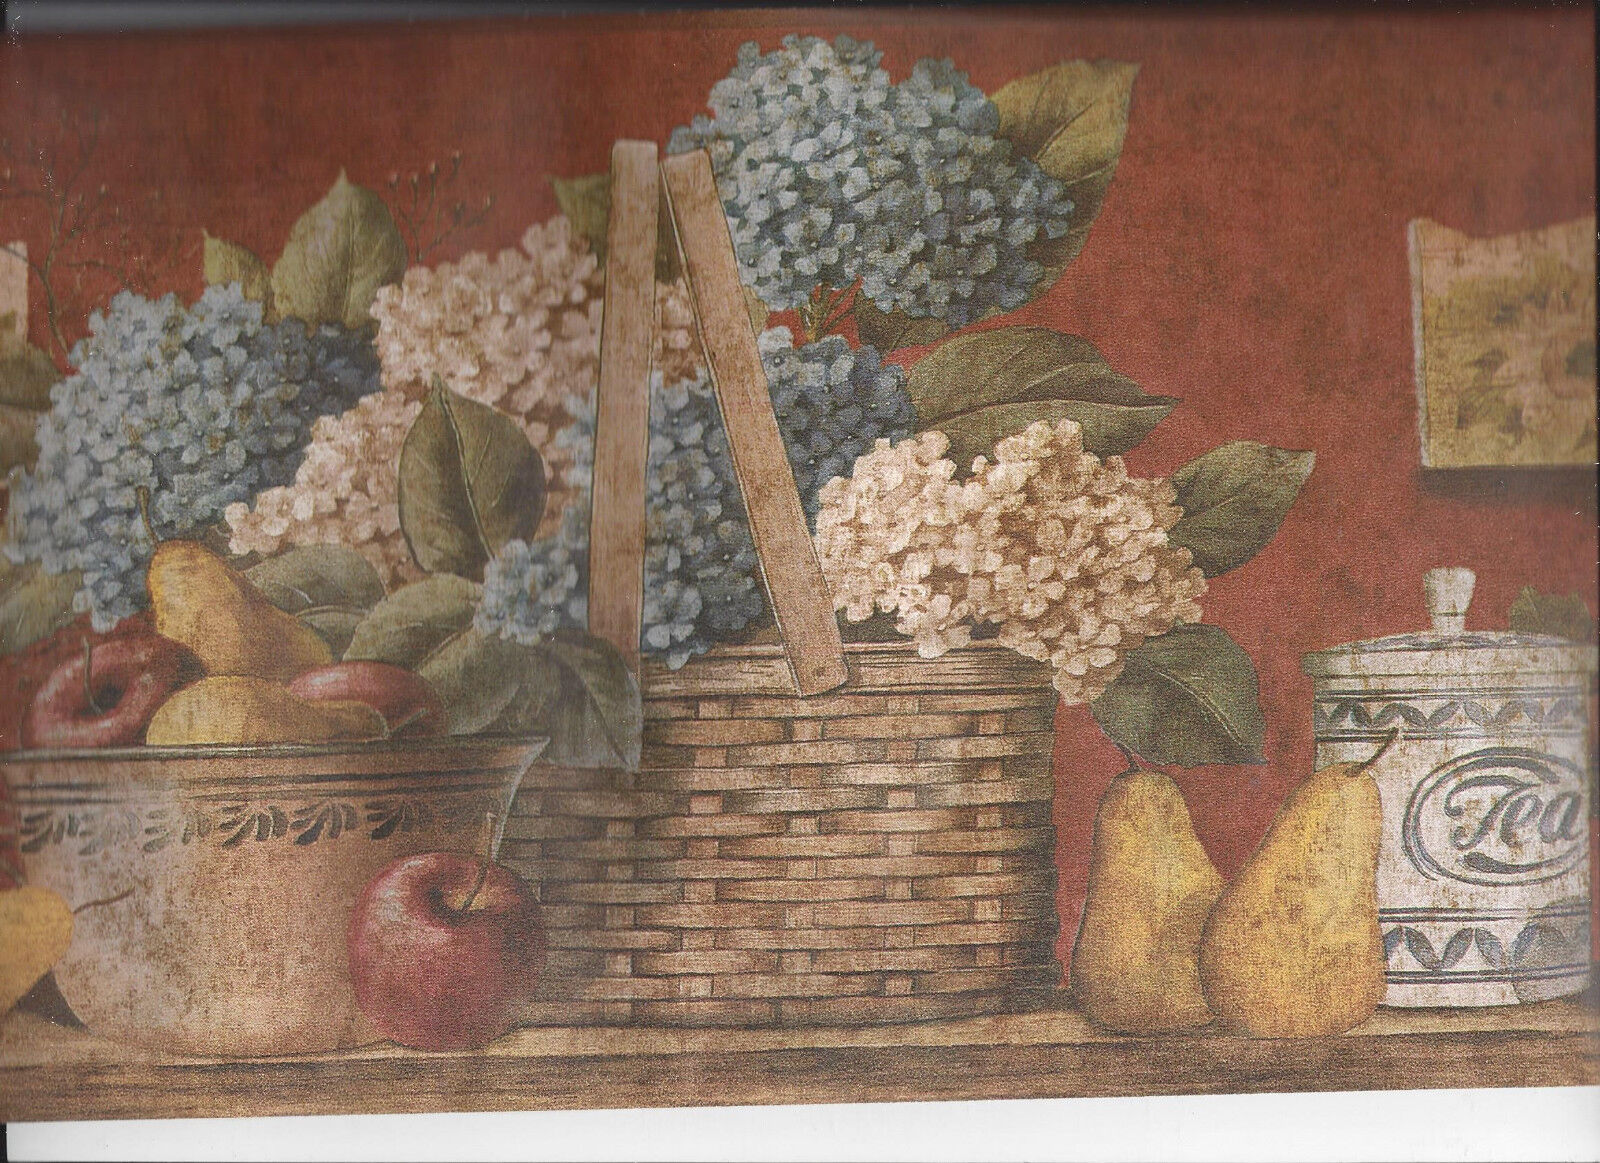 Merveilleux 1 Of 4 Kitchen Basket Fruit Flowers Pottery Wallpaper Border Country Home  Apple Red 2 Of 4 Kitchen ...